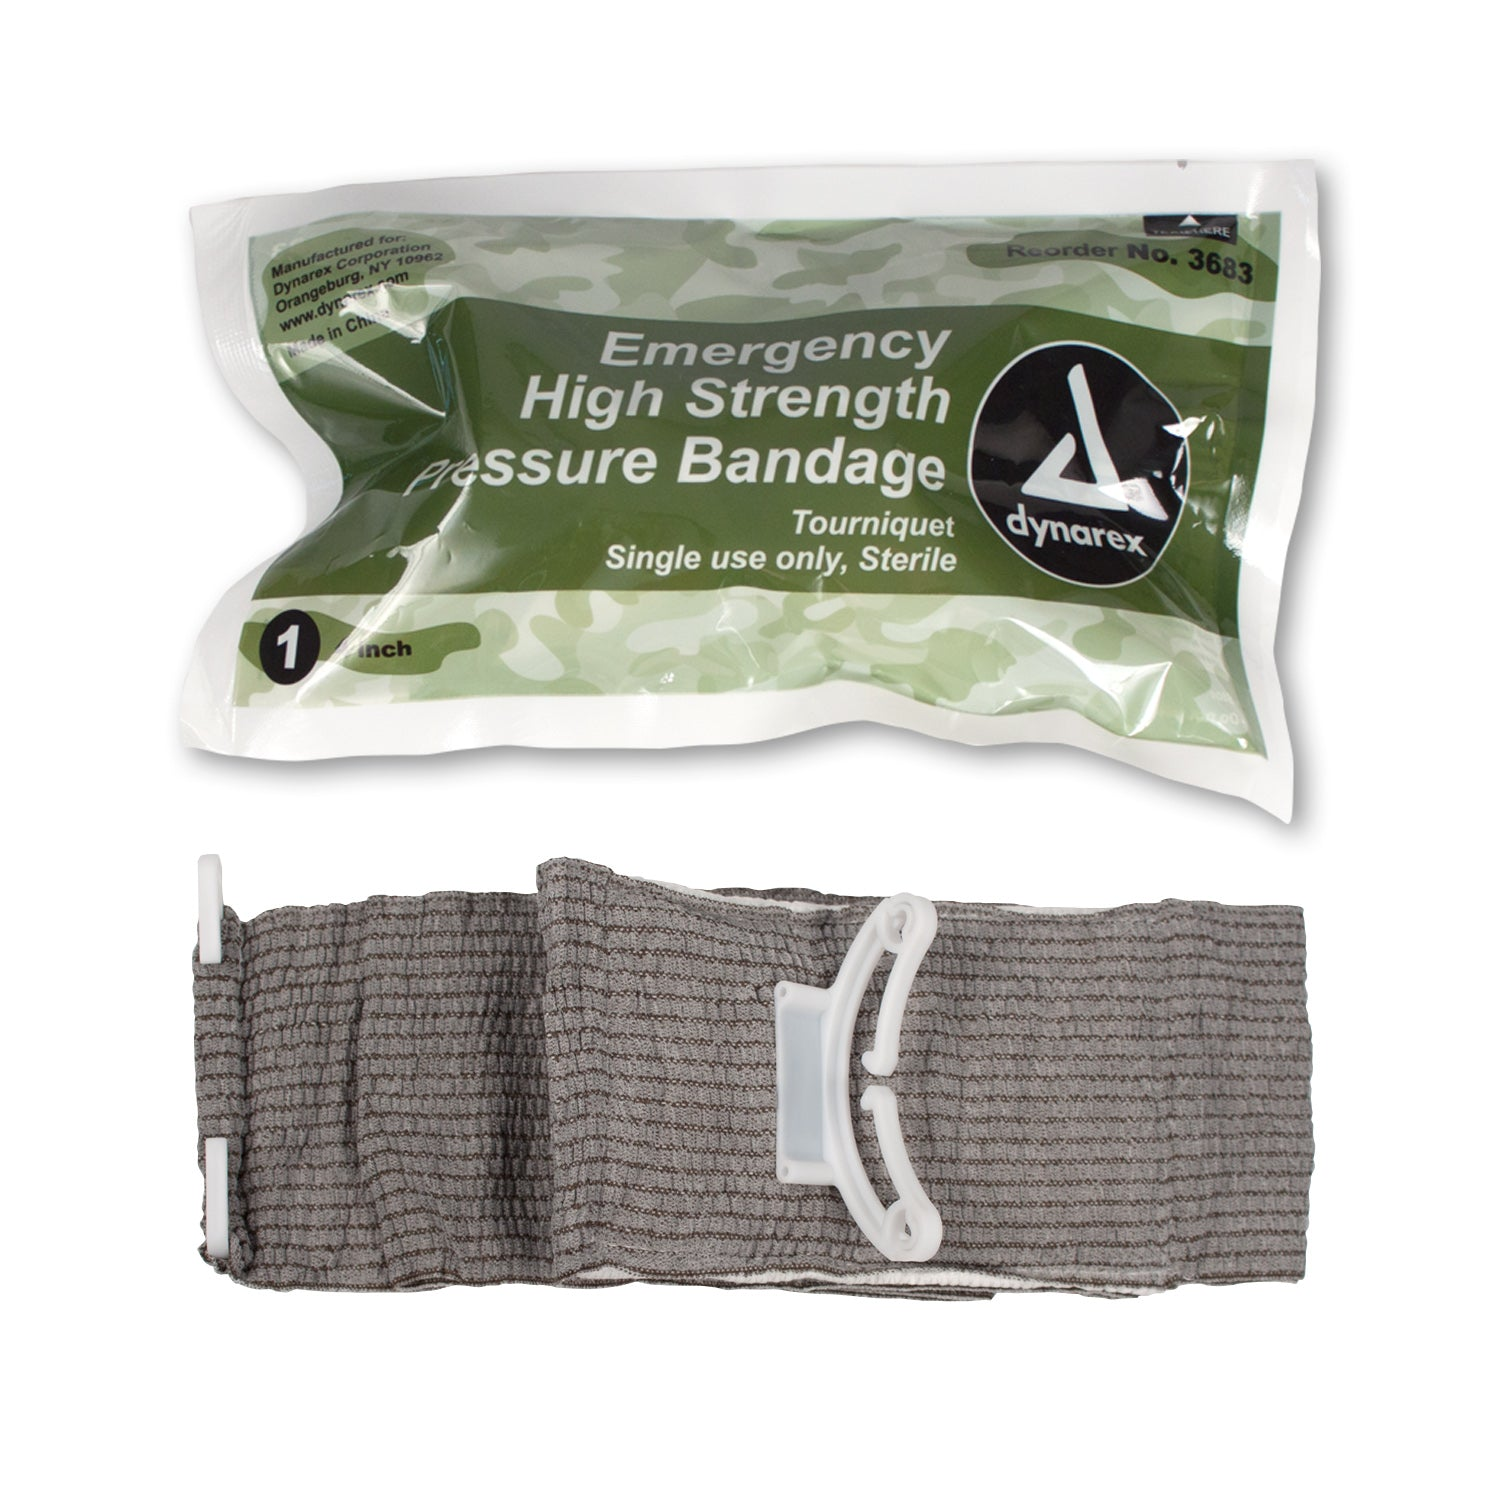 Emergency High Strength Pressure Bandage